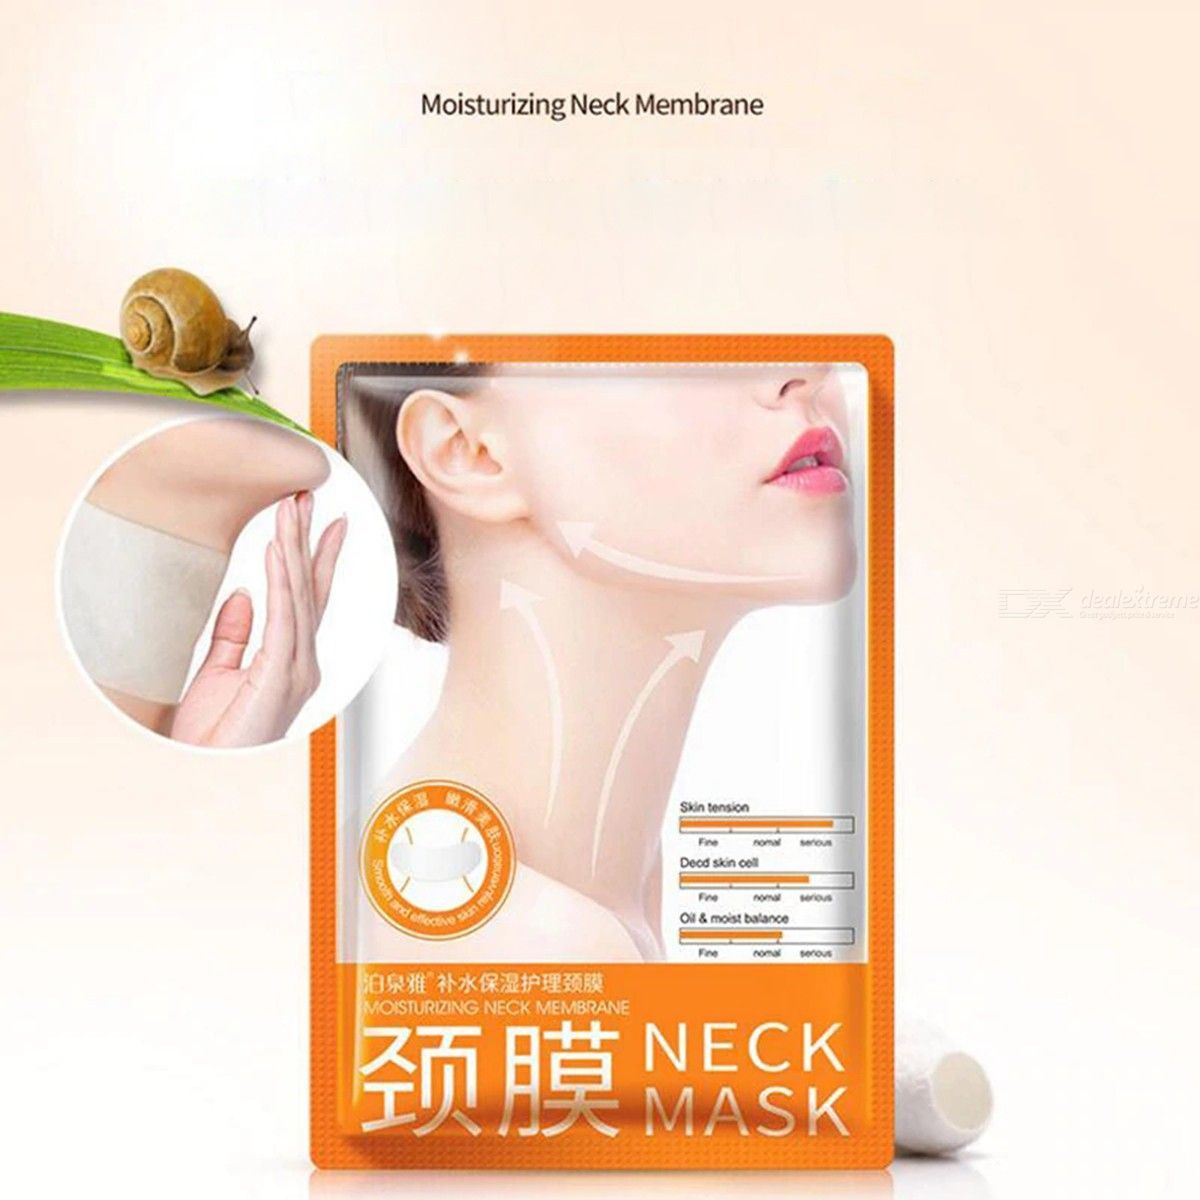 Anti-aging Neck Mask With Hyaluronic Acid And Collagen Reduces Wrinkles